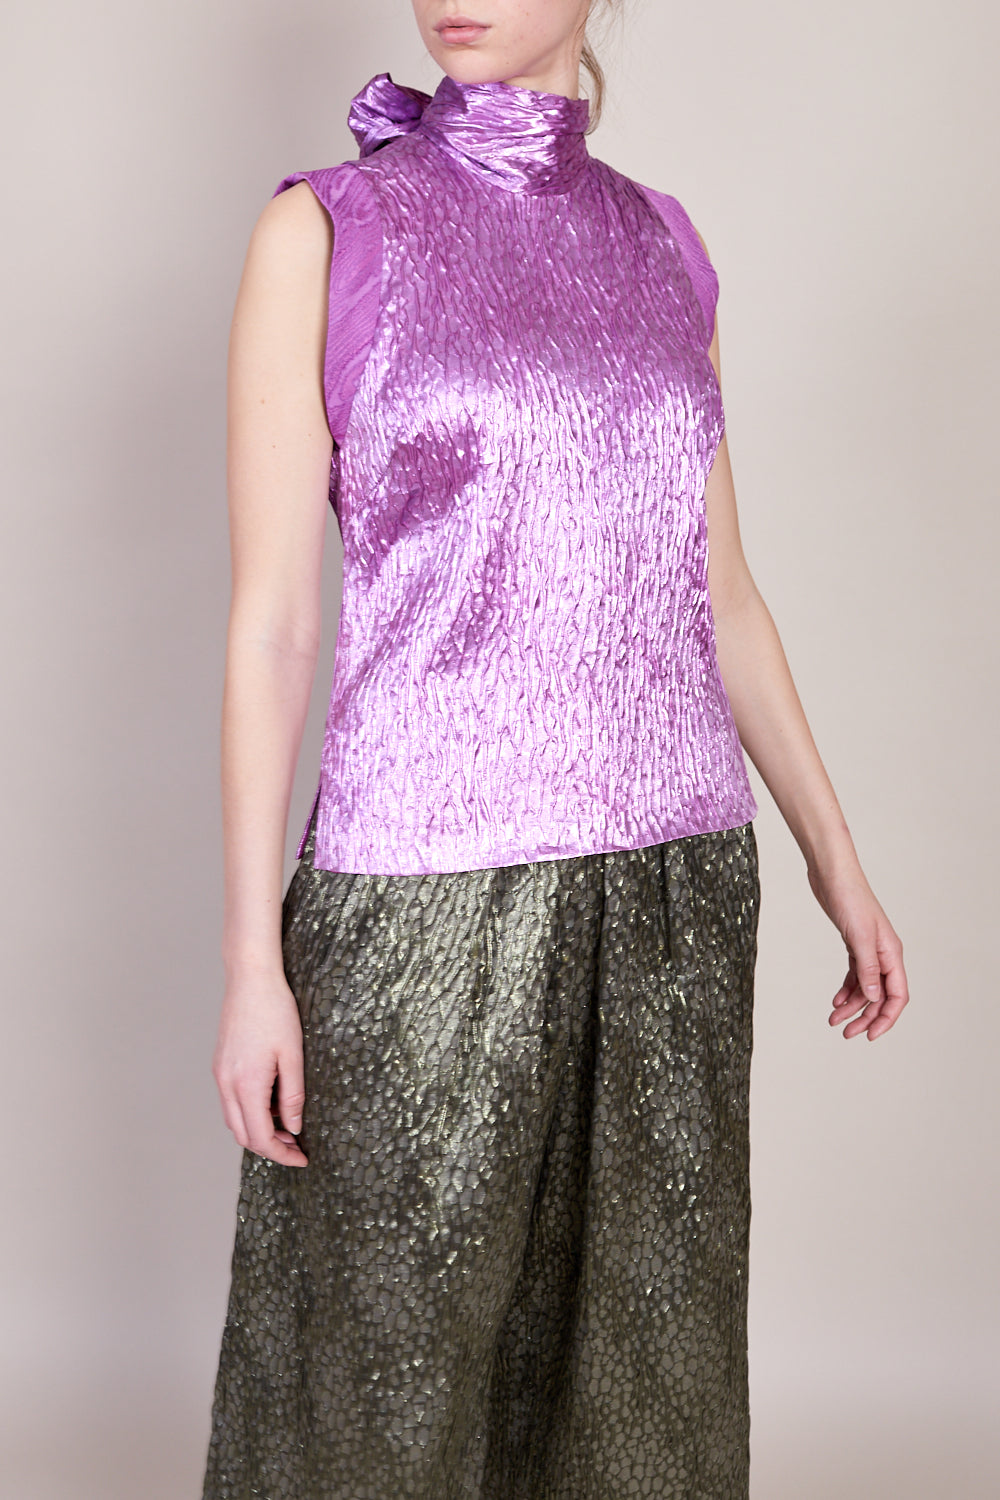 Rachel Comey Mirar Top in Orchid - Vert & Vogue